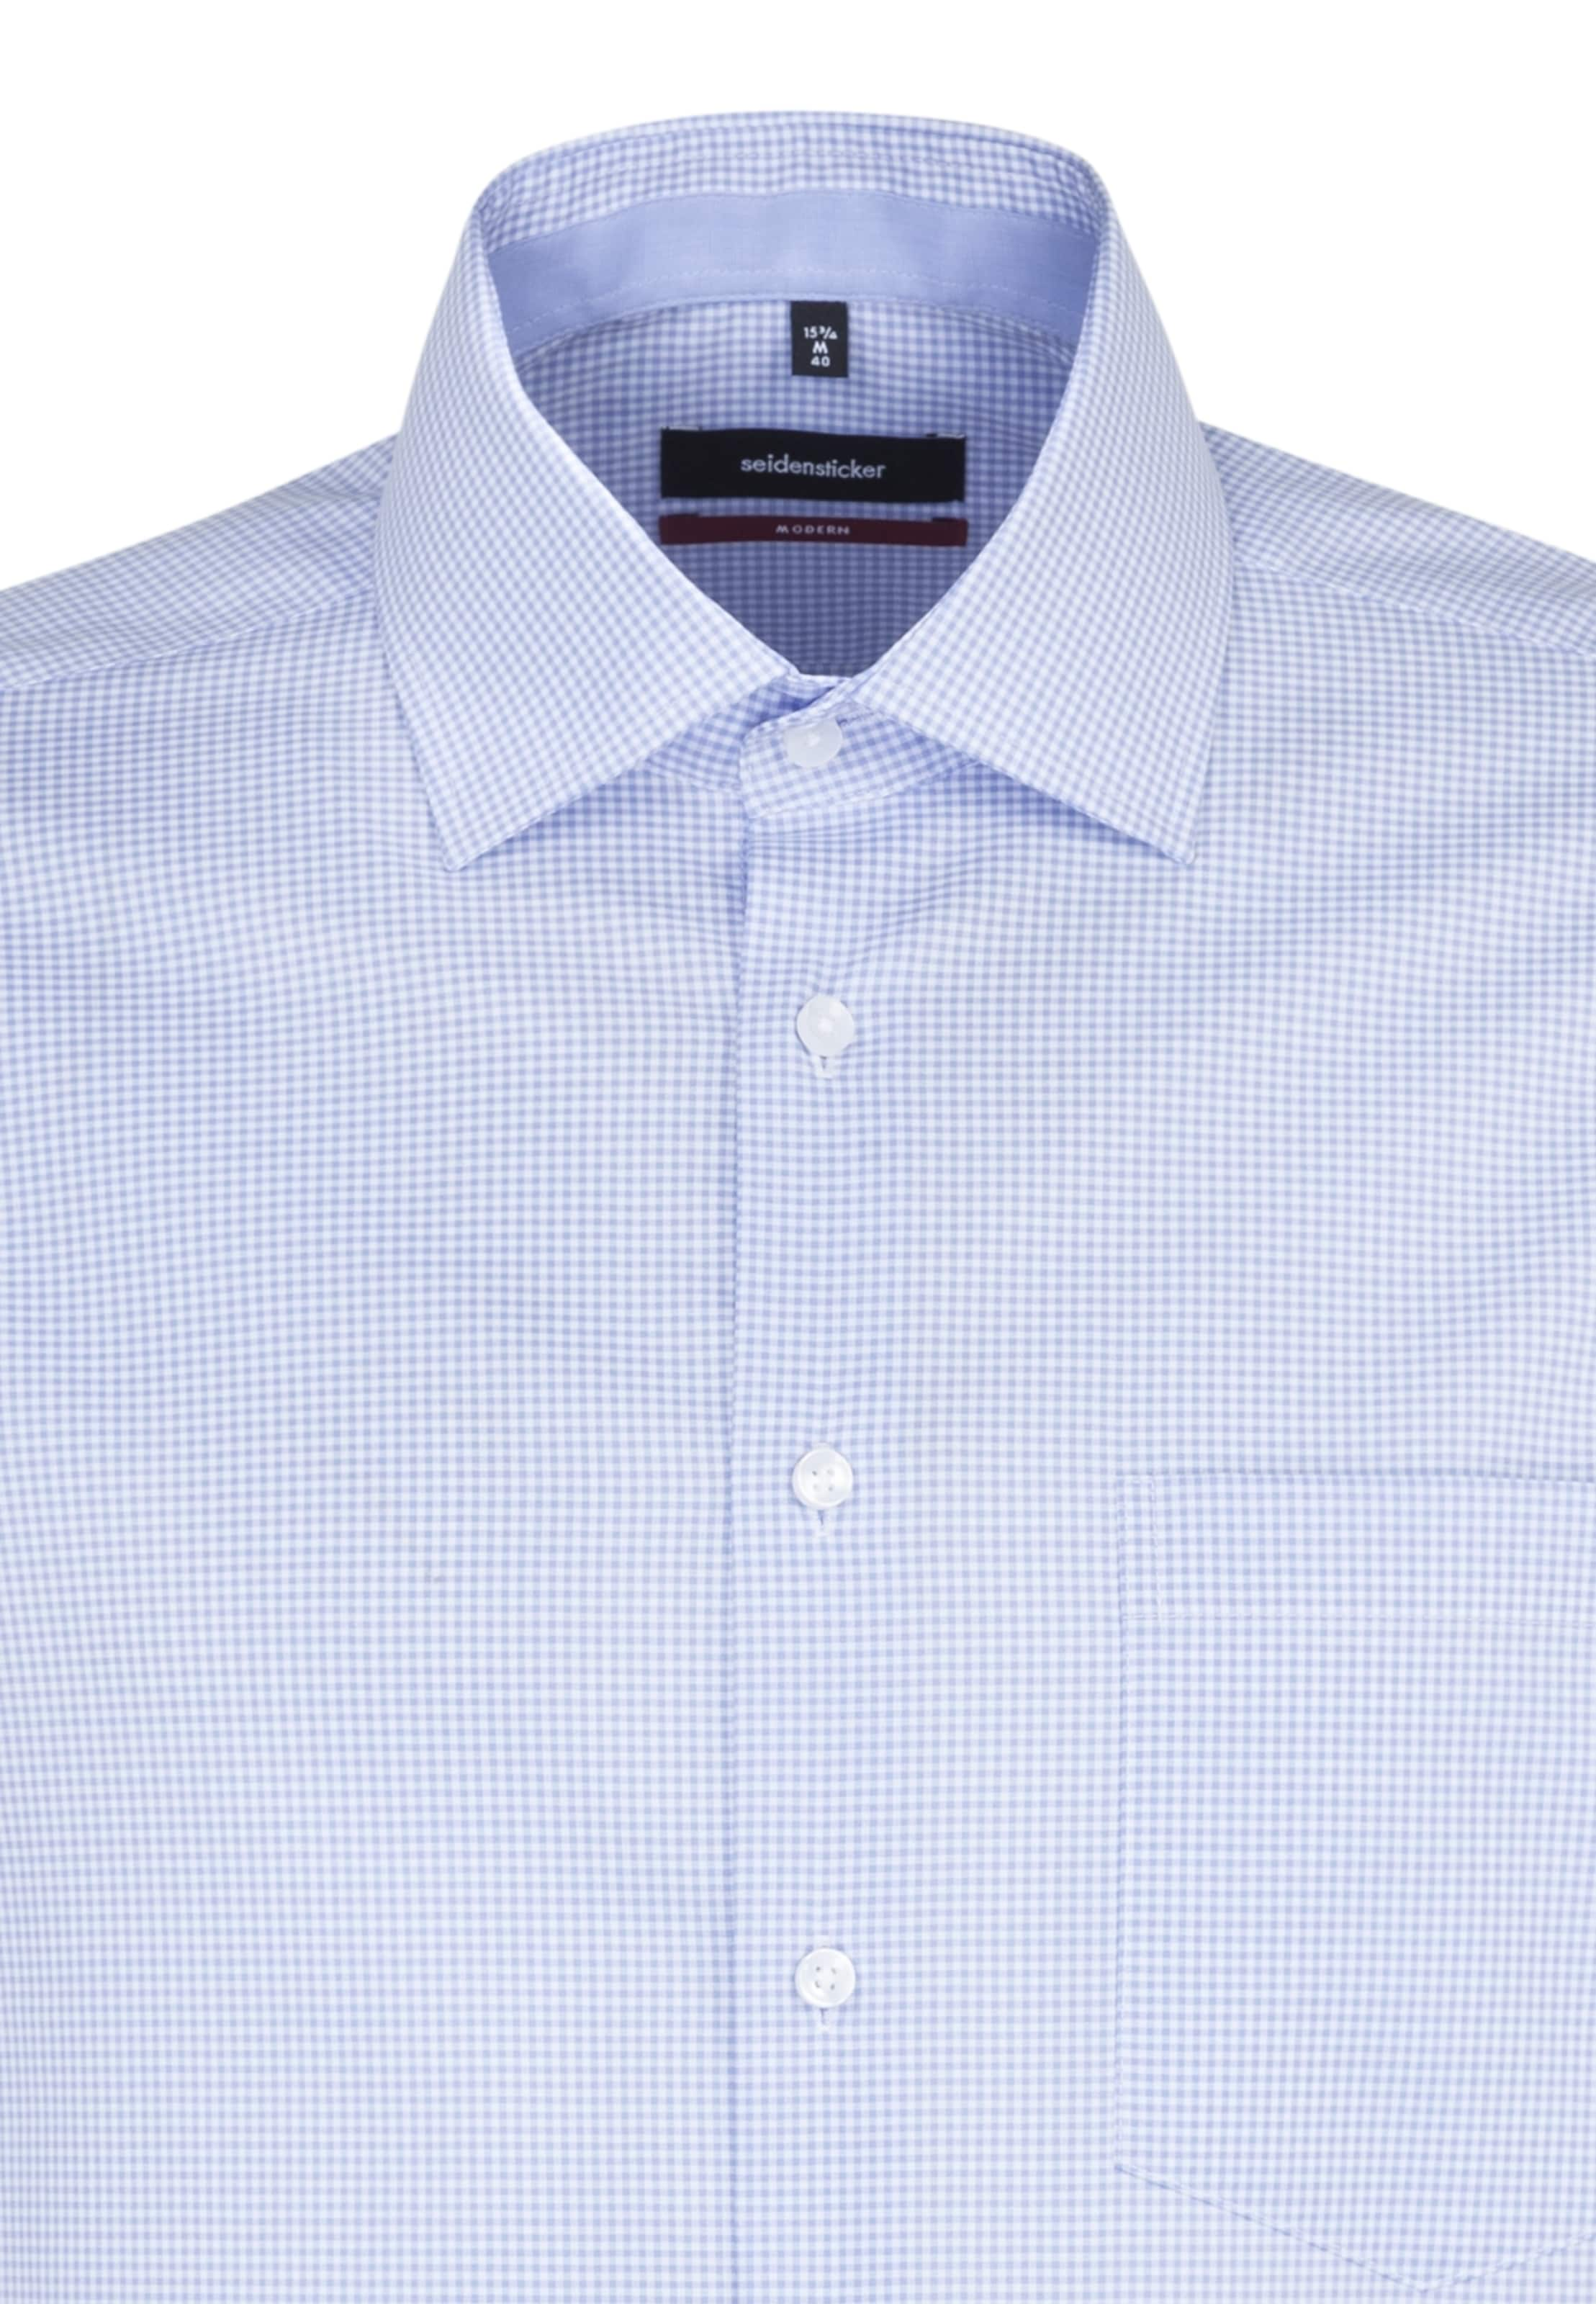 Chemise 'modern' Bleu FuméBlanc Seidensticker En Business 5q3LcRj4AS